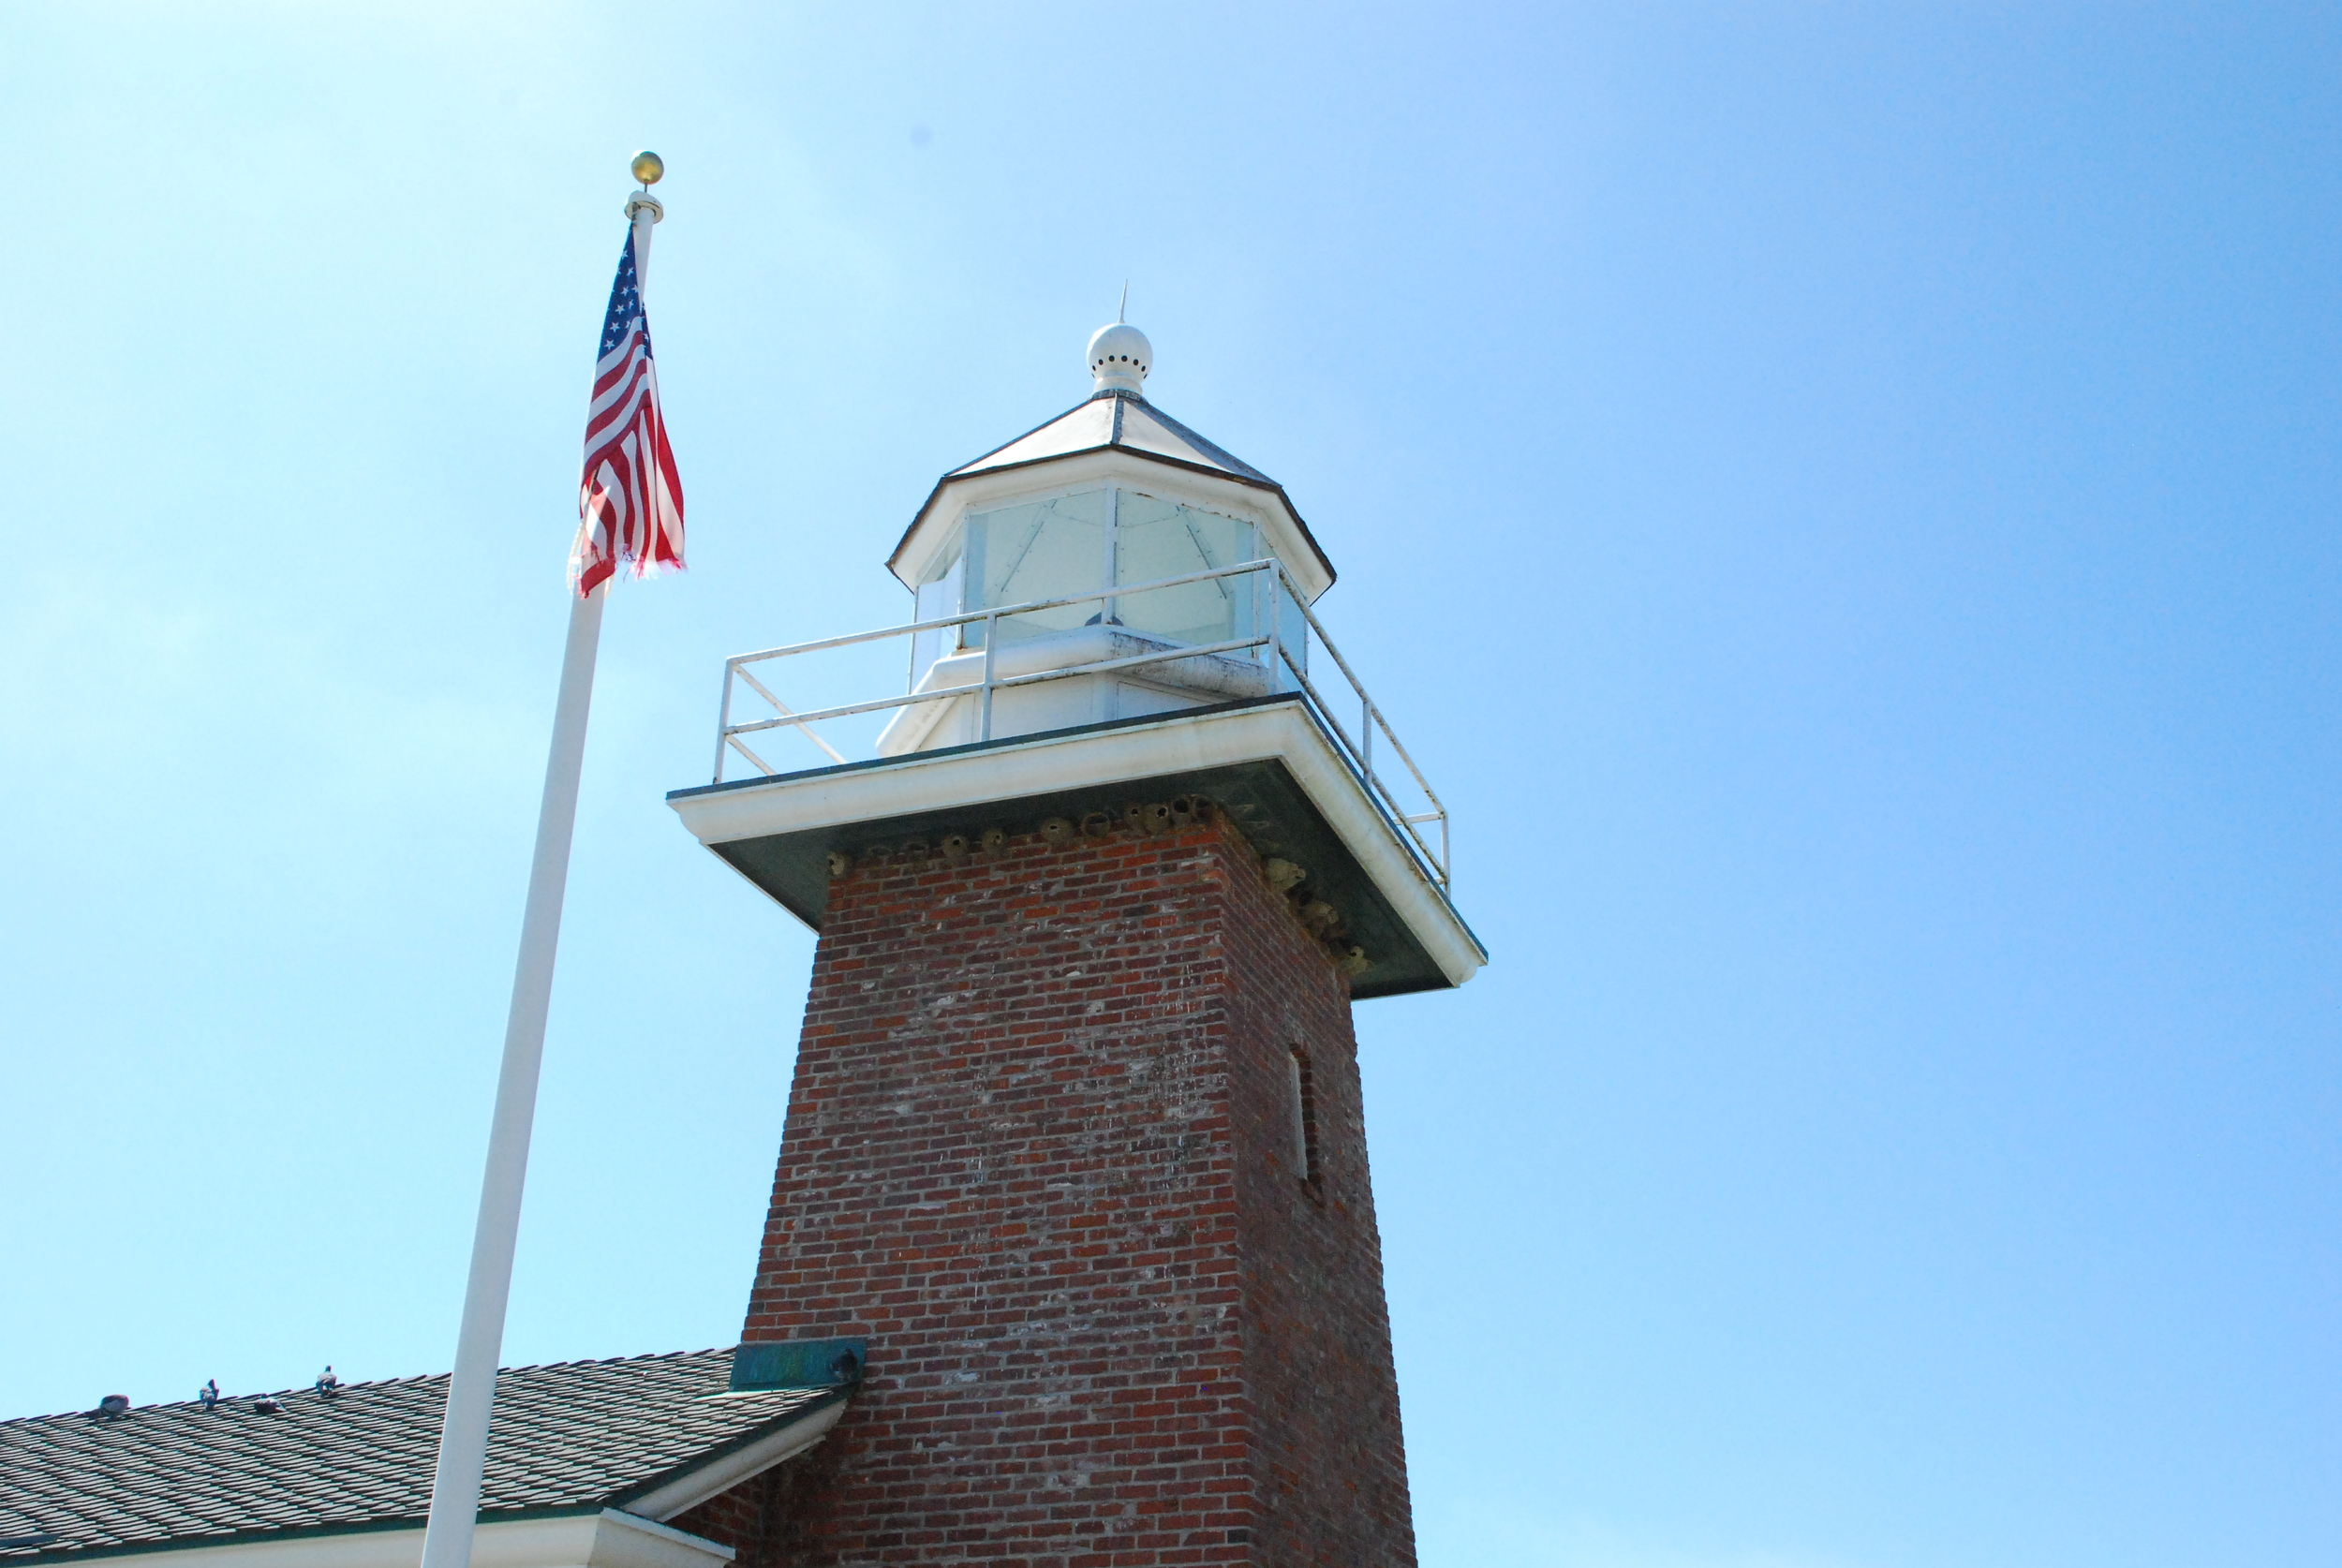 Santa Cruz lighthouse 92208 169.JPG